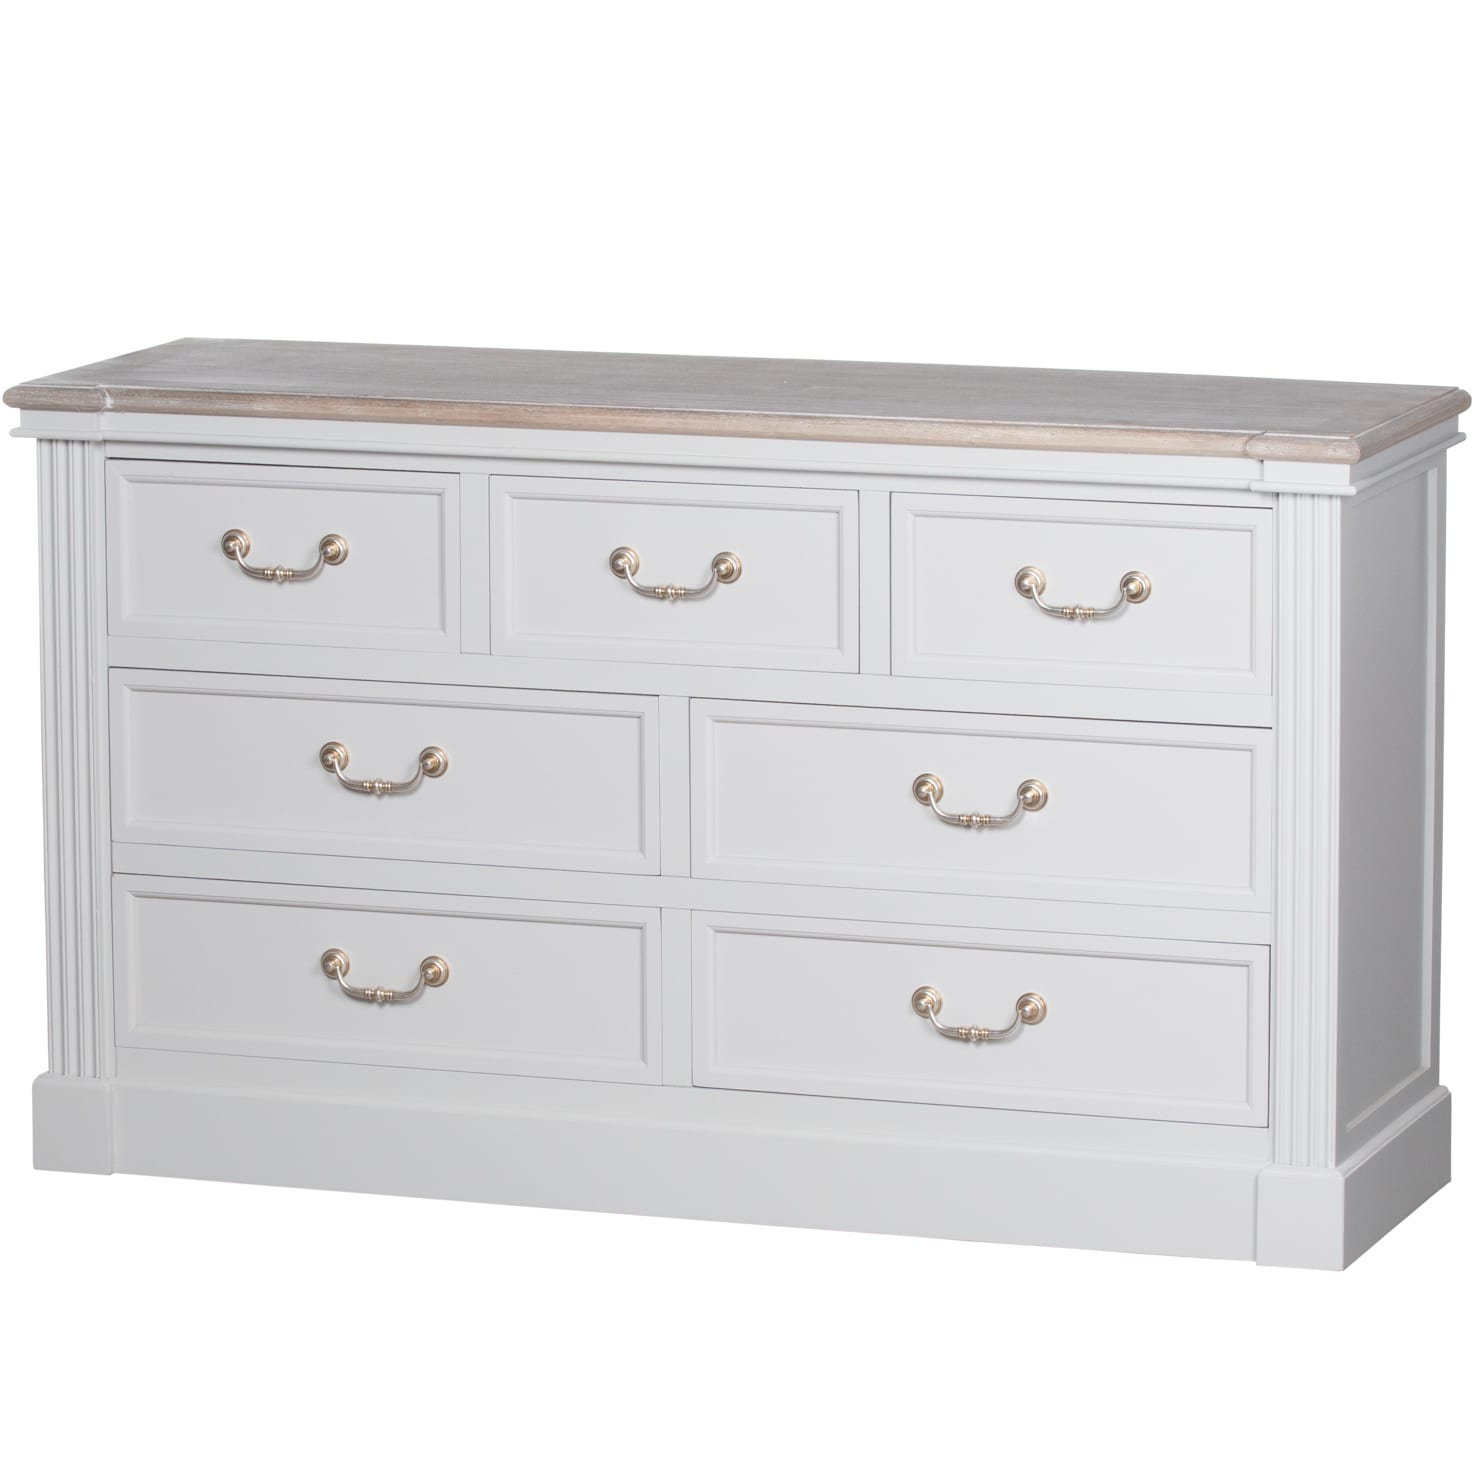 Honfleur 7 Drawer Chest